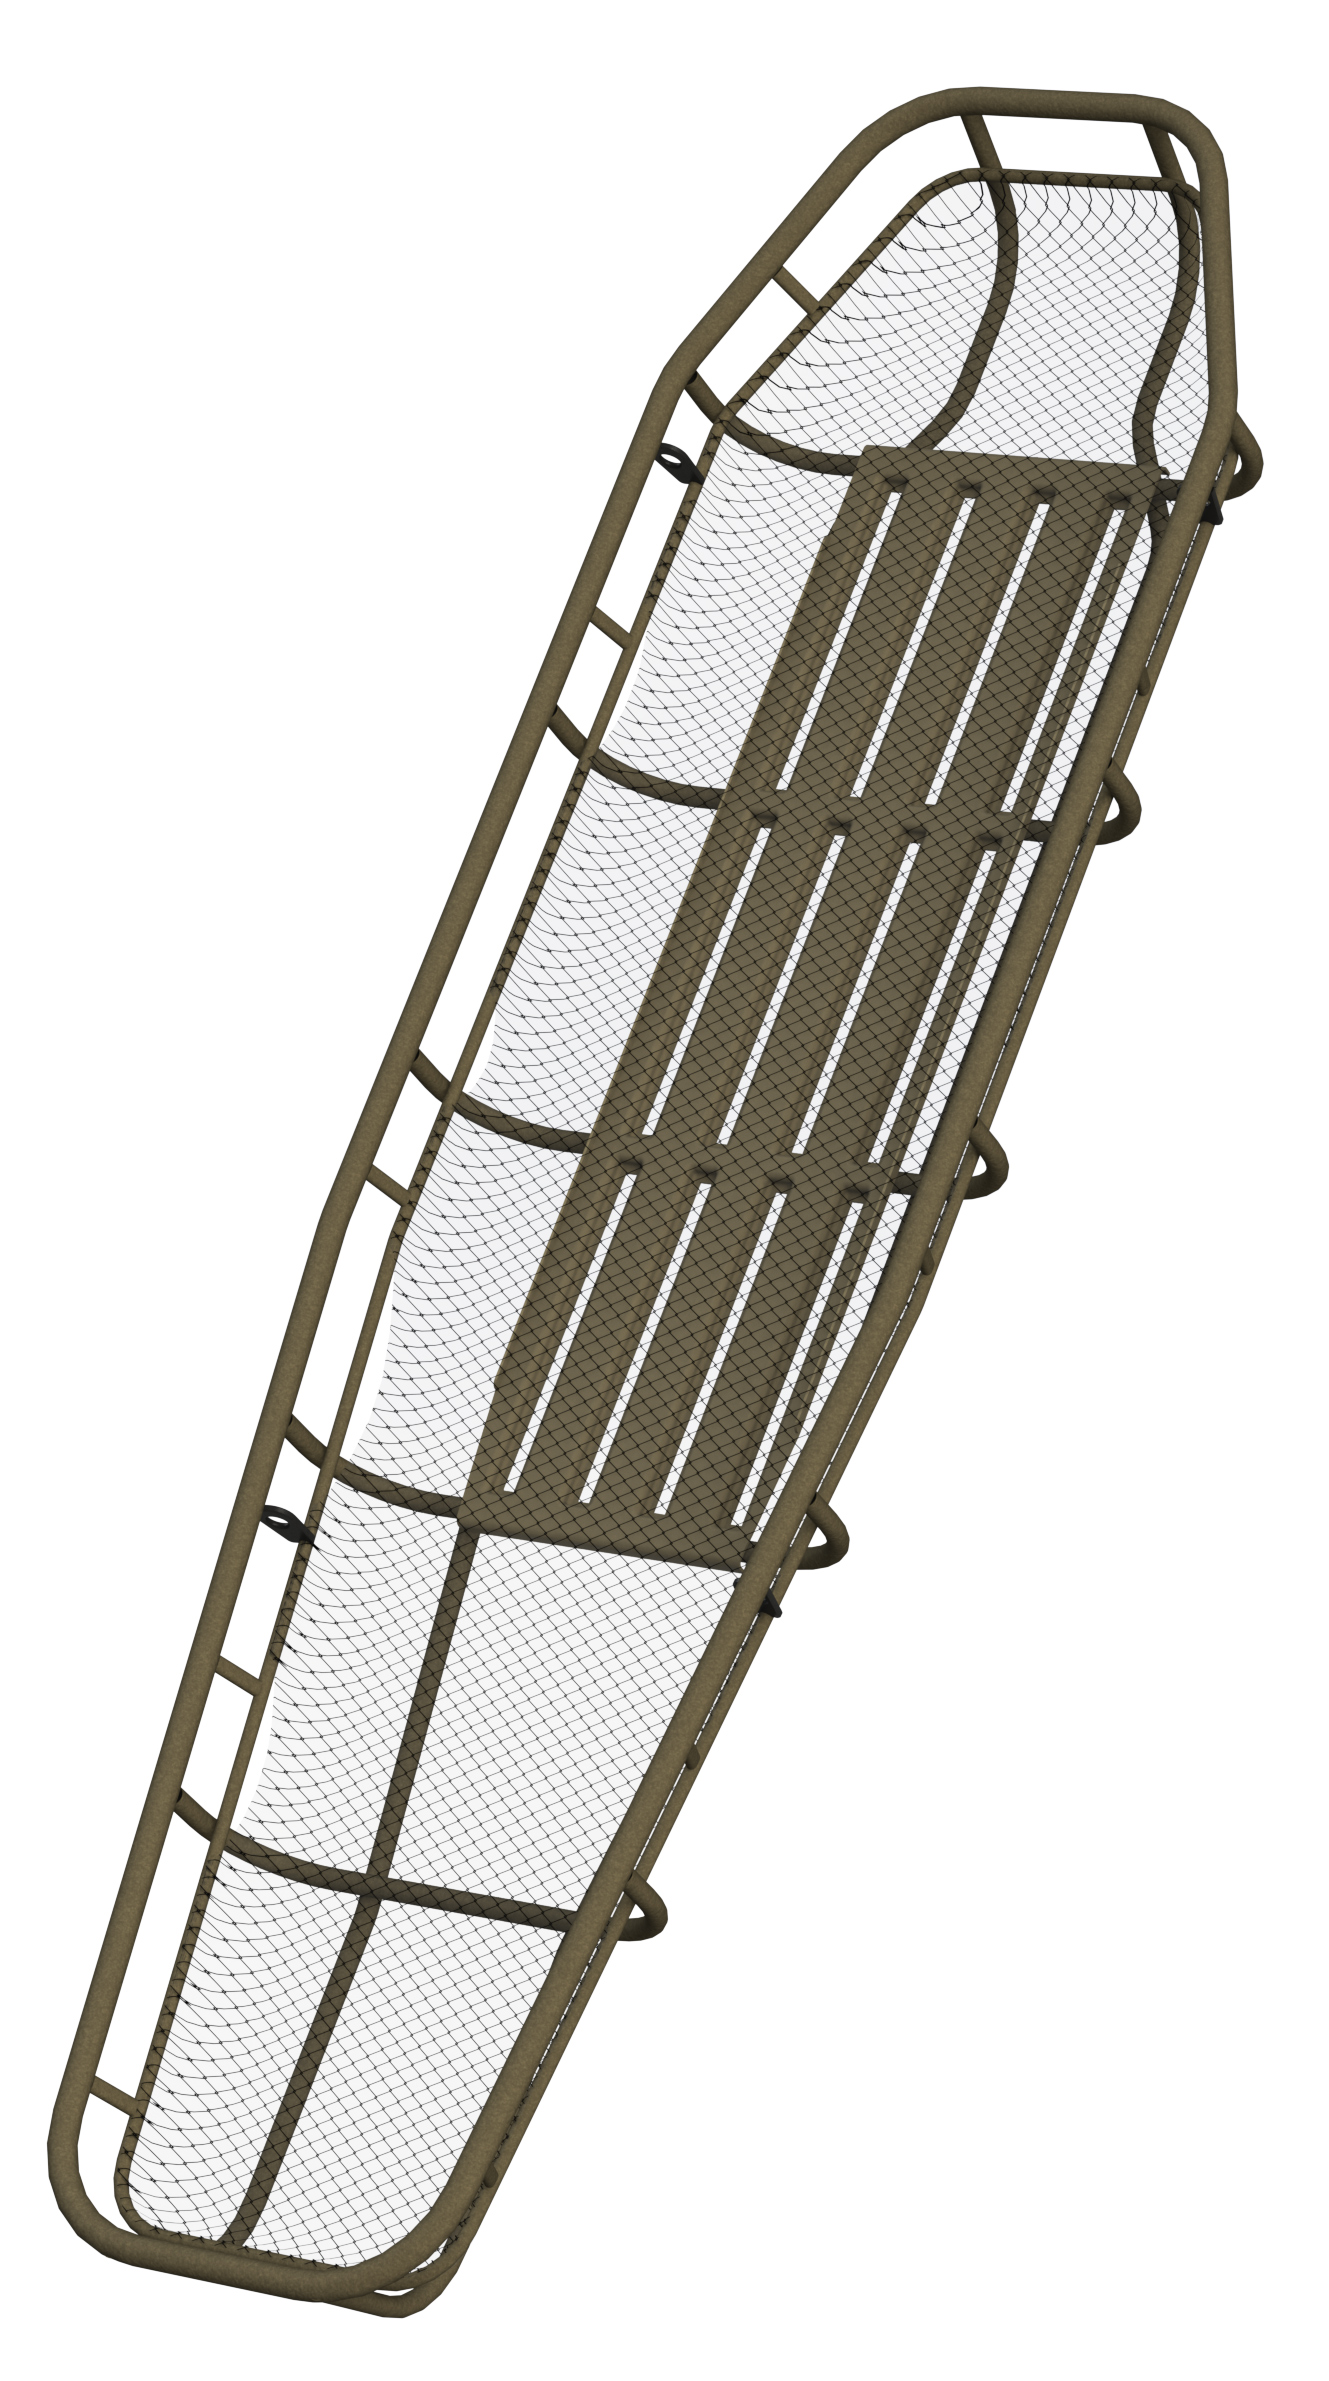 Traverse-Titan-Basket-Stretcher-(Titanium)